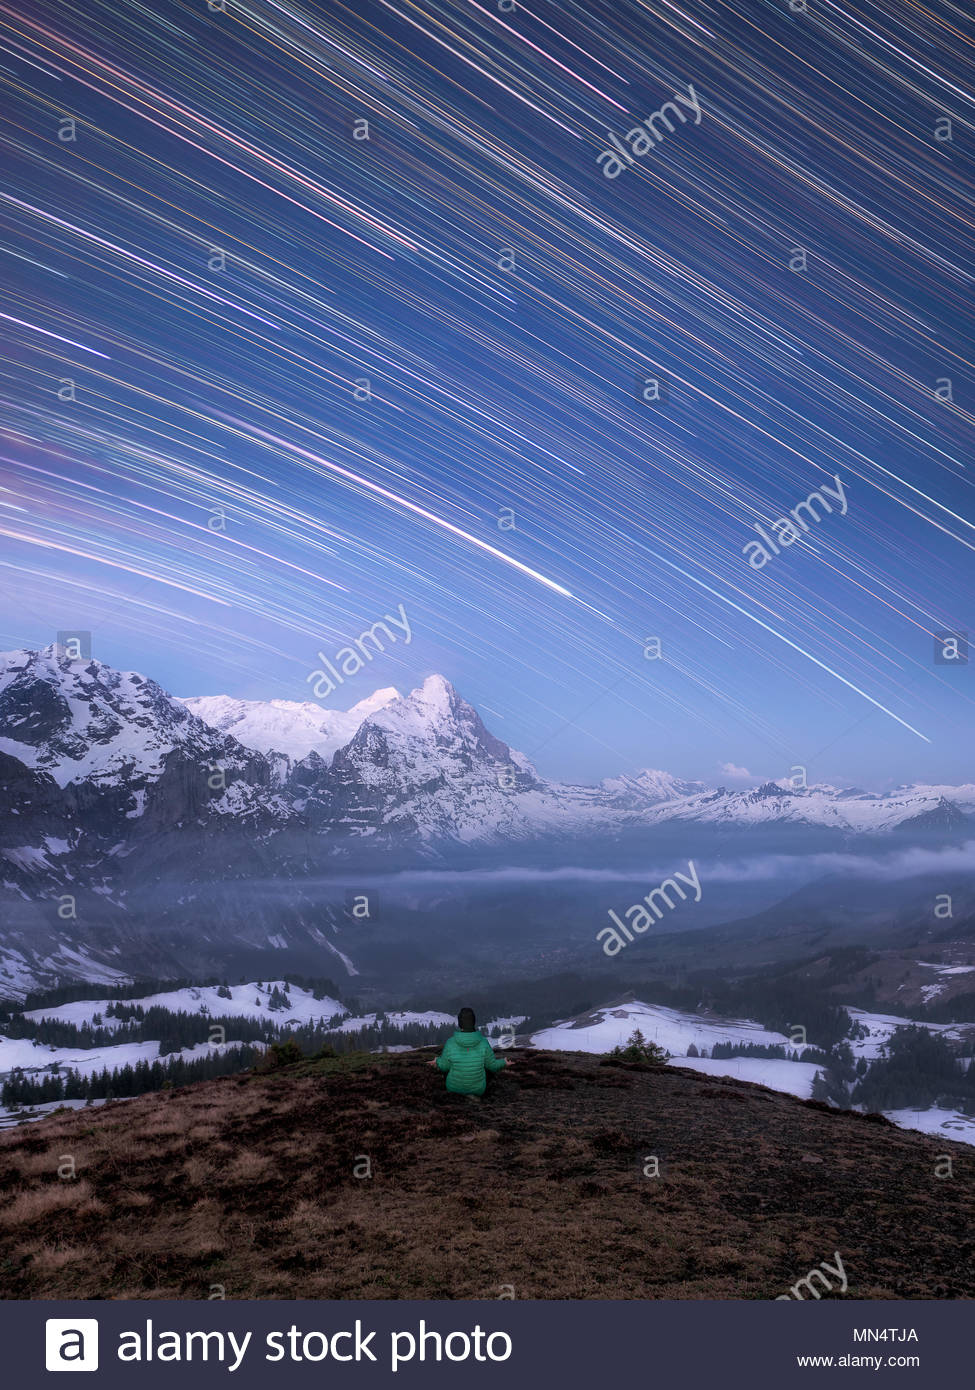 one man sitting under the night sky in the mountains meditating, shooting star like star trails from earth rotation and snow covered alpine landscape, - Stock Image